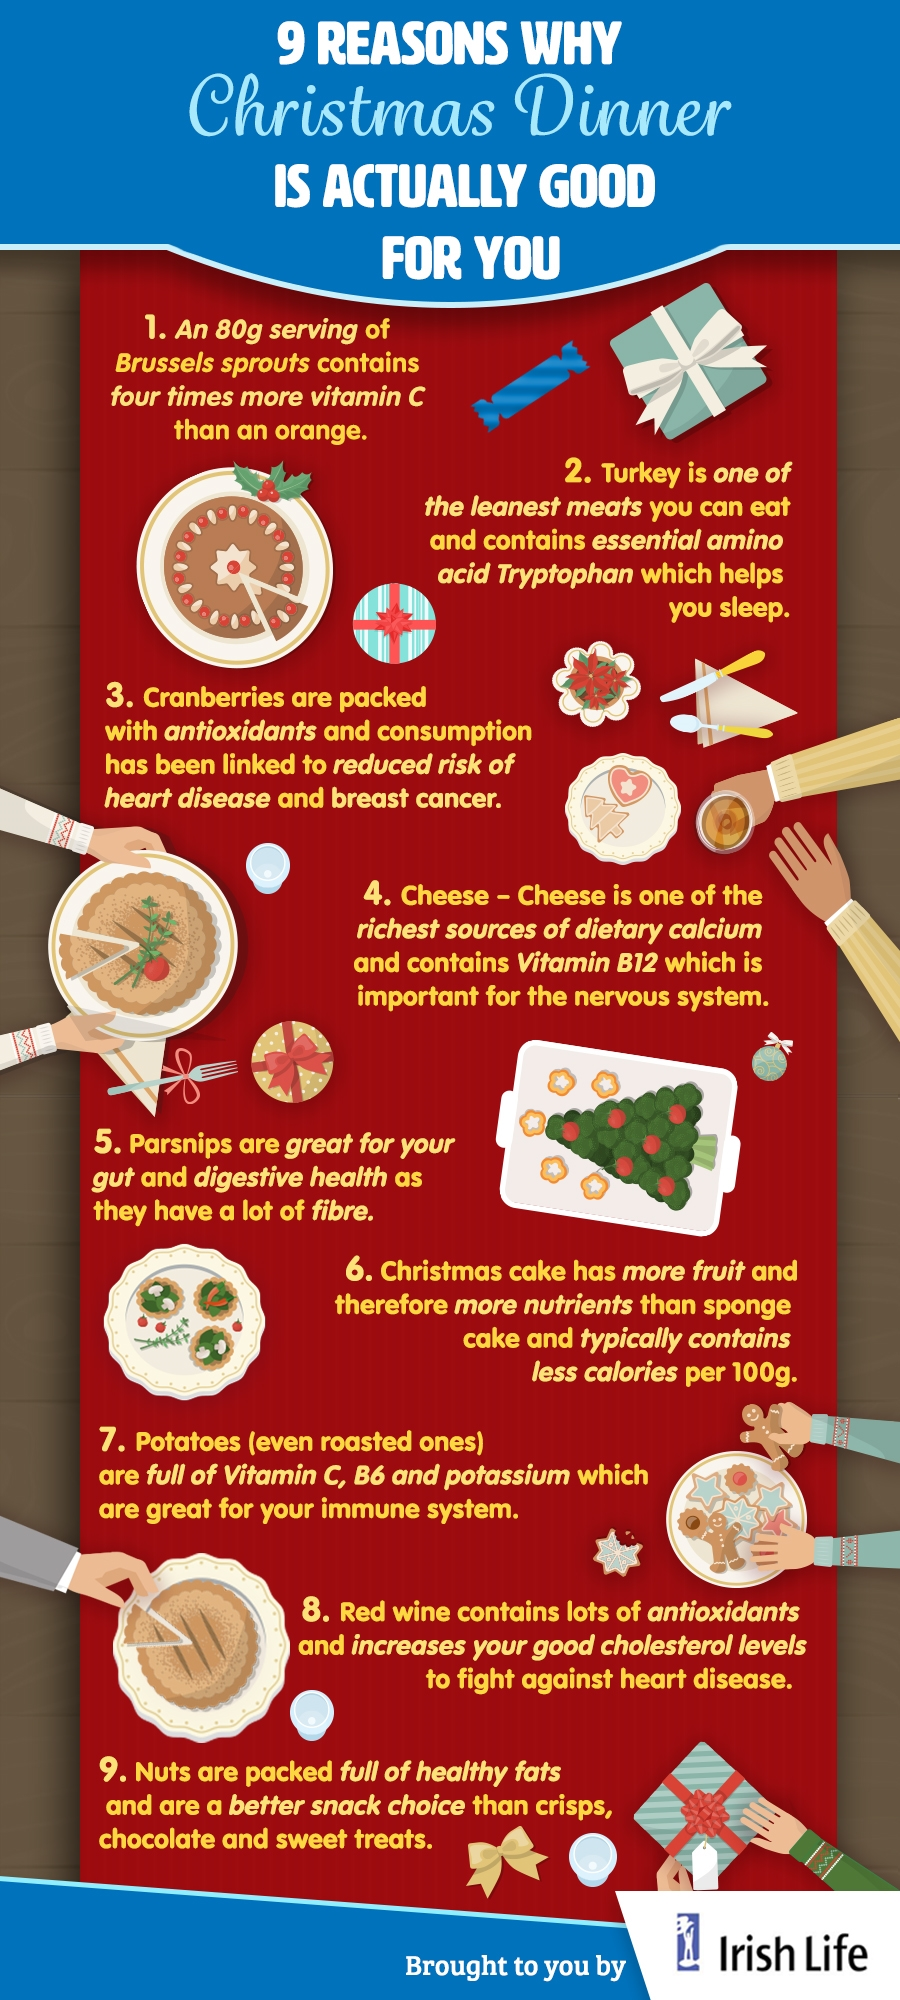 9 Reasons Why Christmas Dinner is Actually Good for You